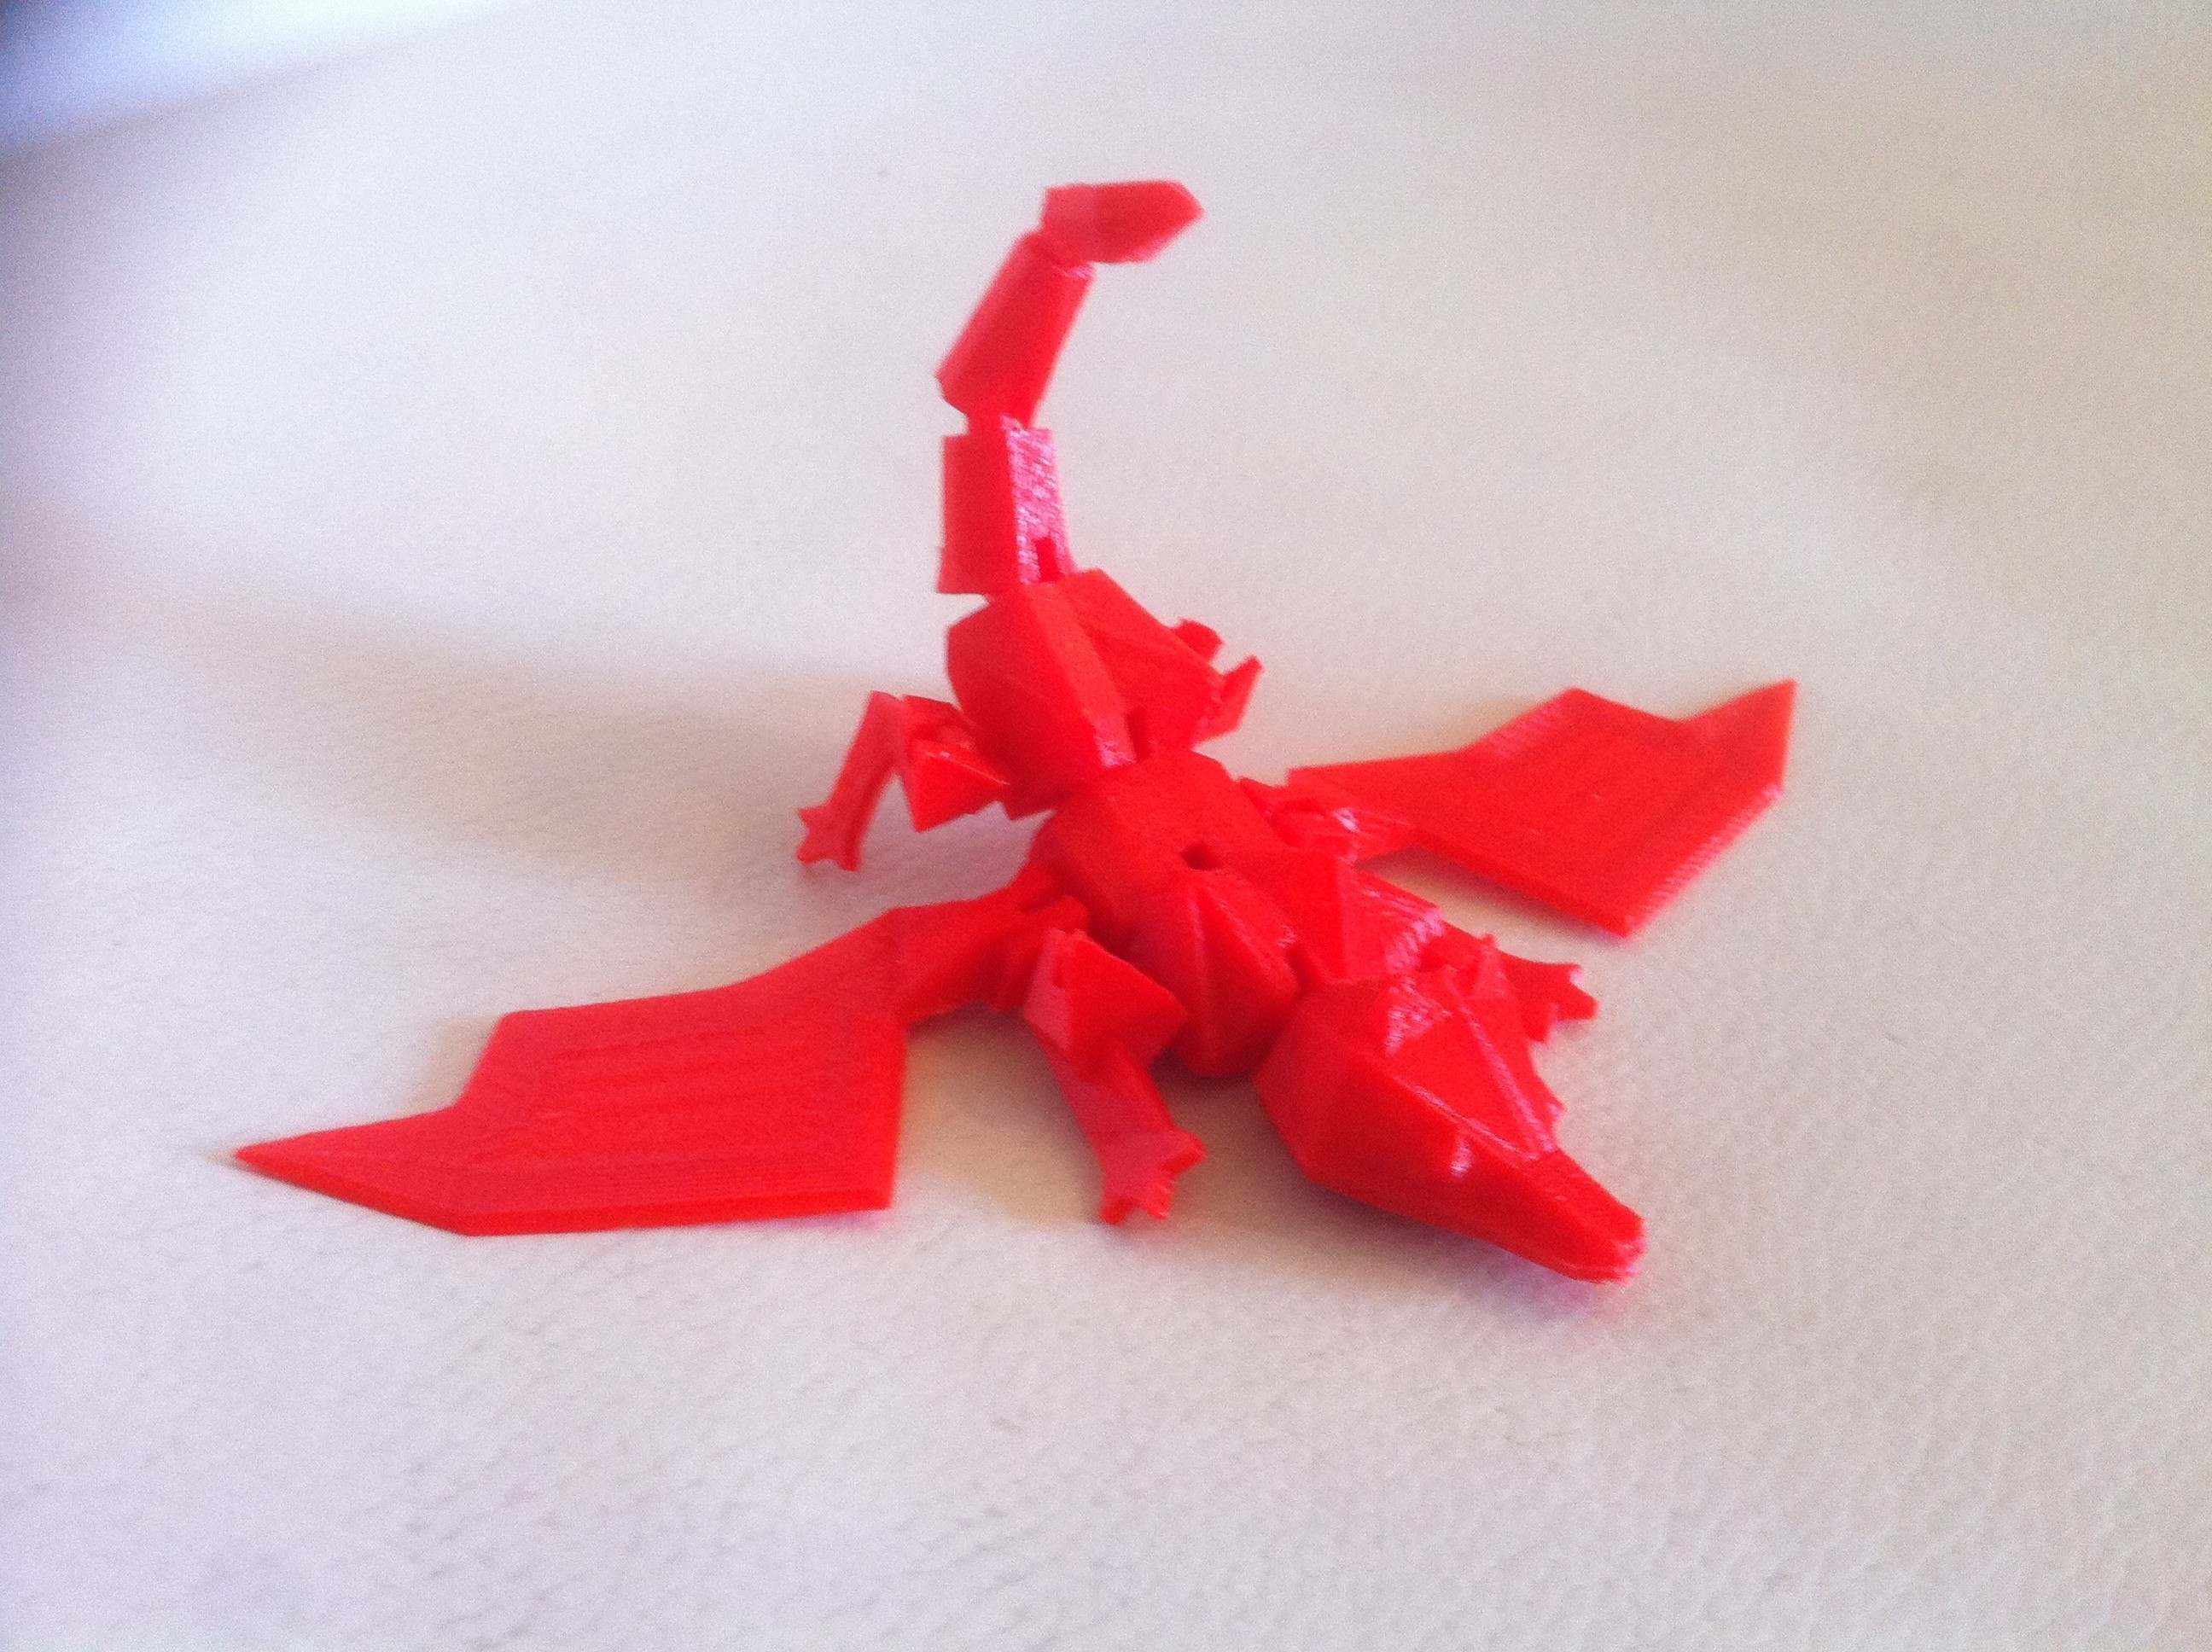 IMG_3863.JPG Download STL file My little Dragon - Articulated - Without support • 3D print model, baboon